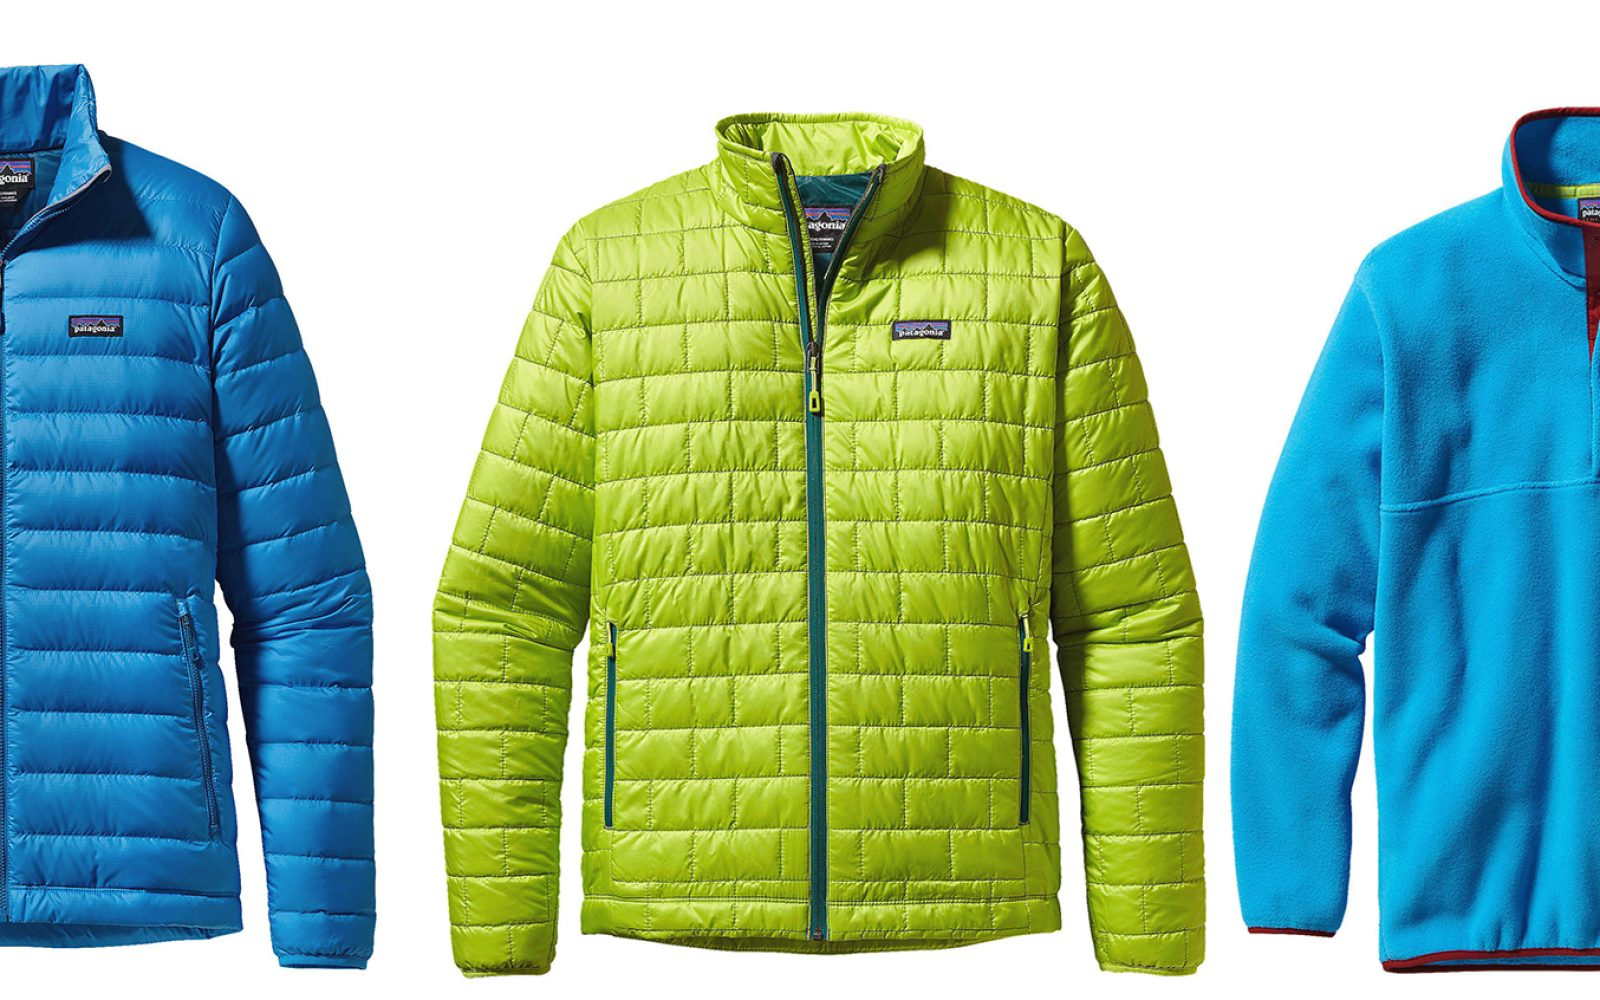 caf92b95a Patagonia End of Season Sale - up to 50% off  Down Sweater Jacket ...